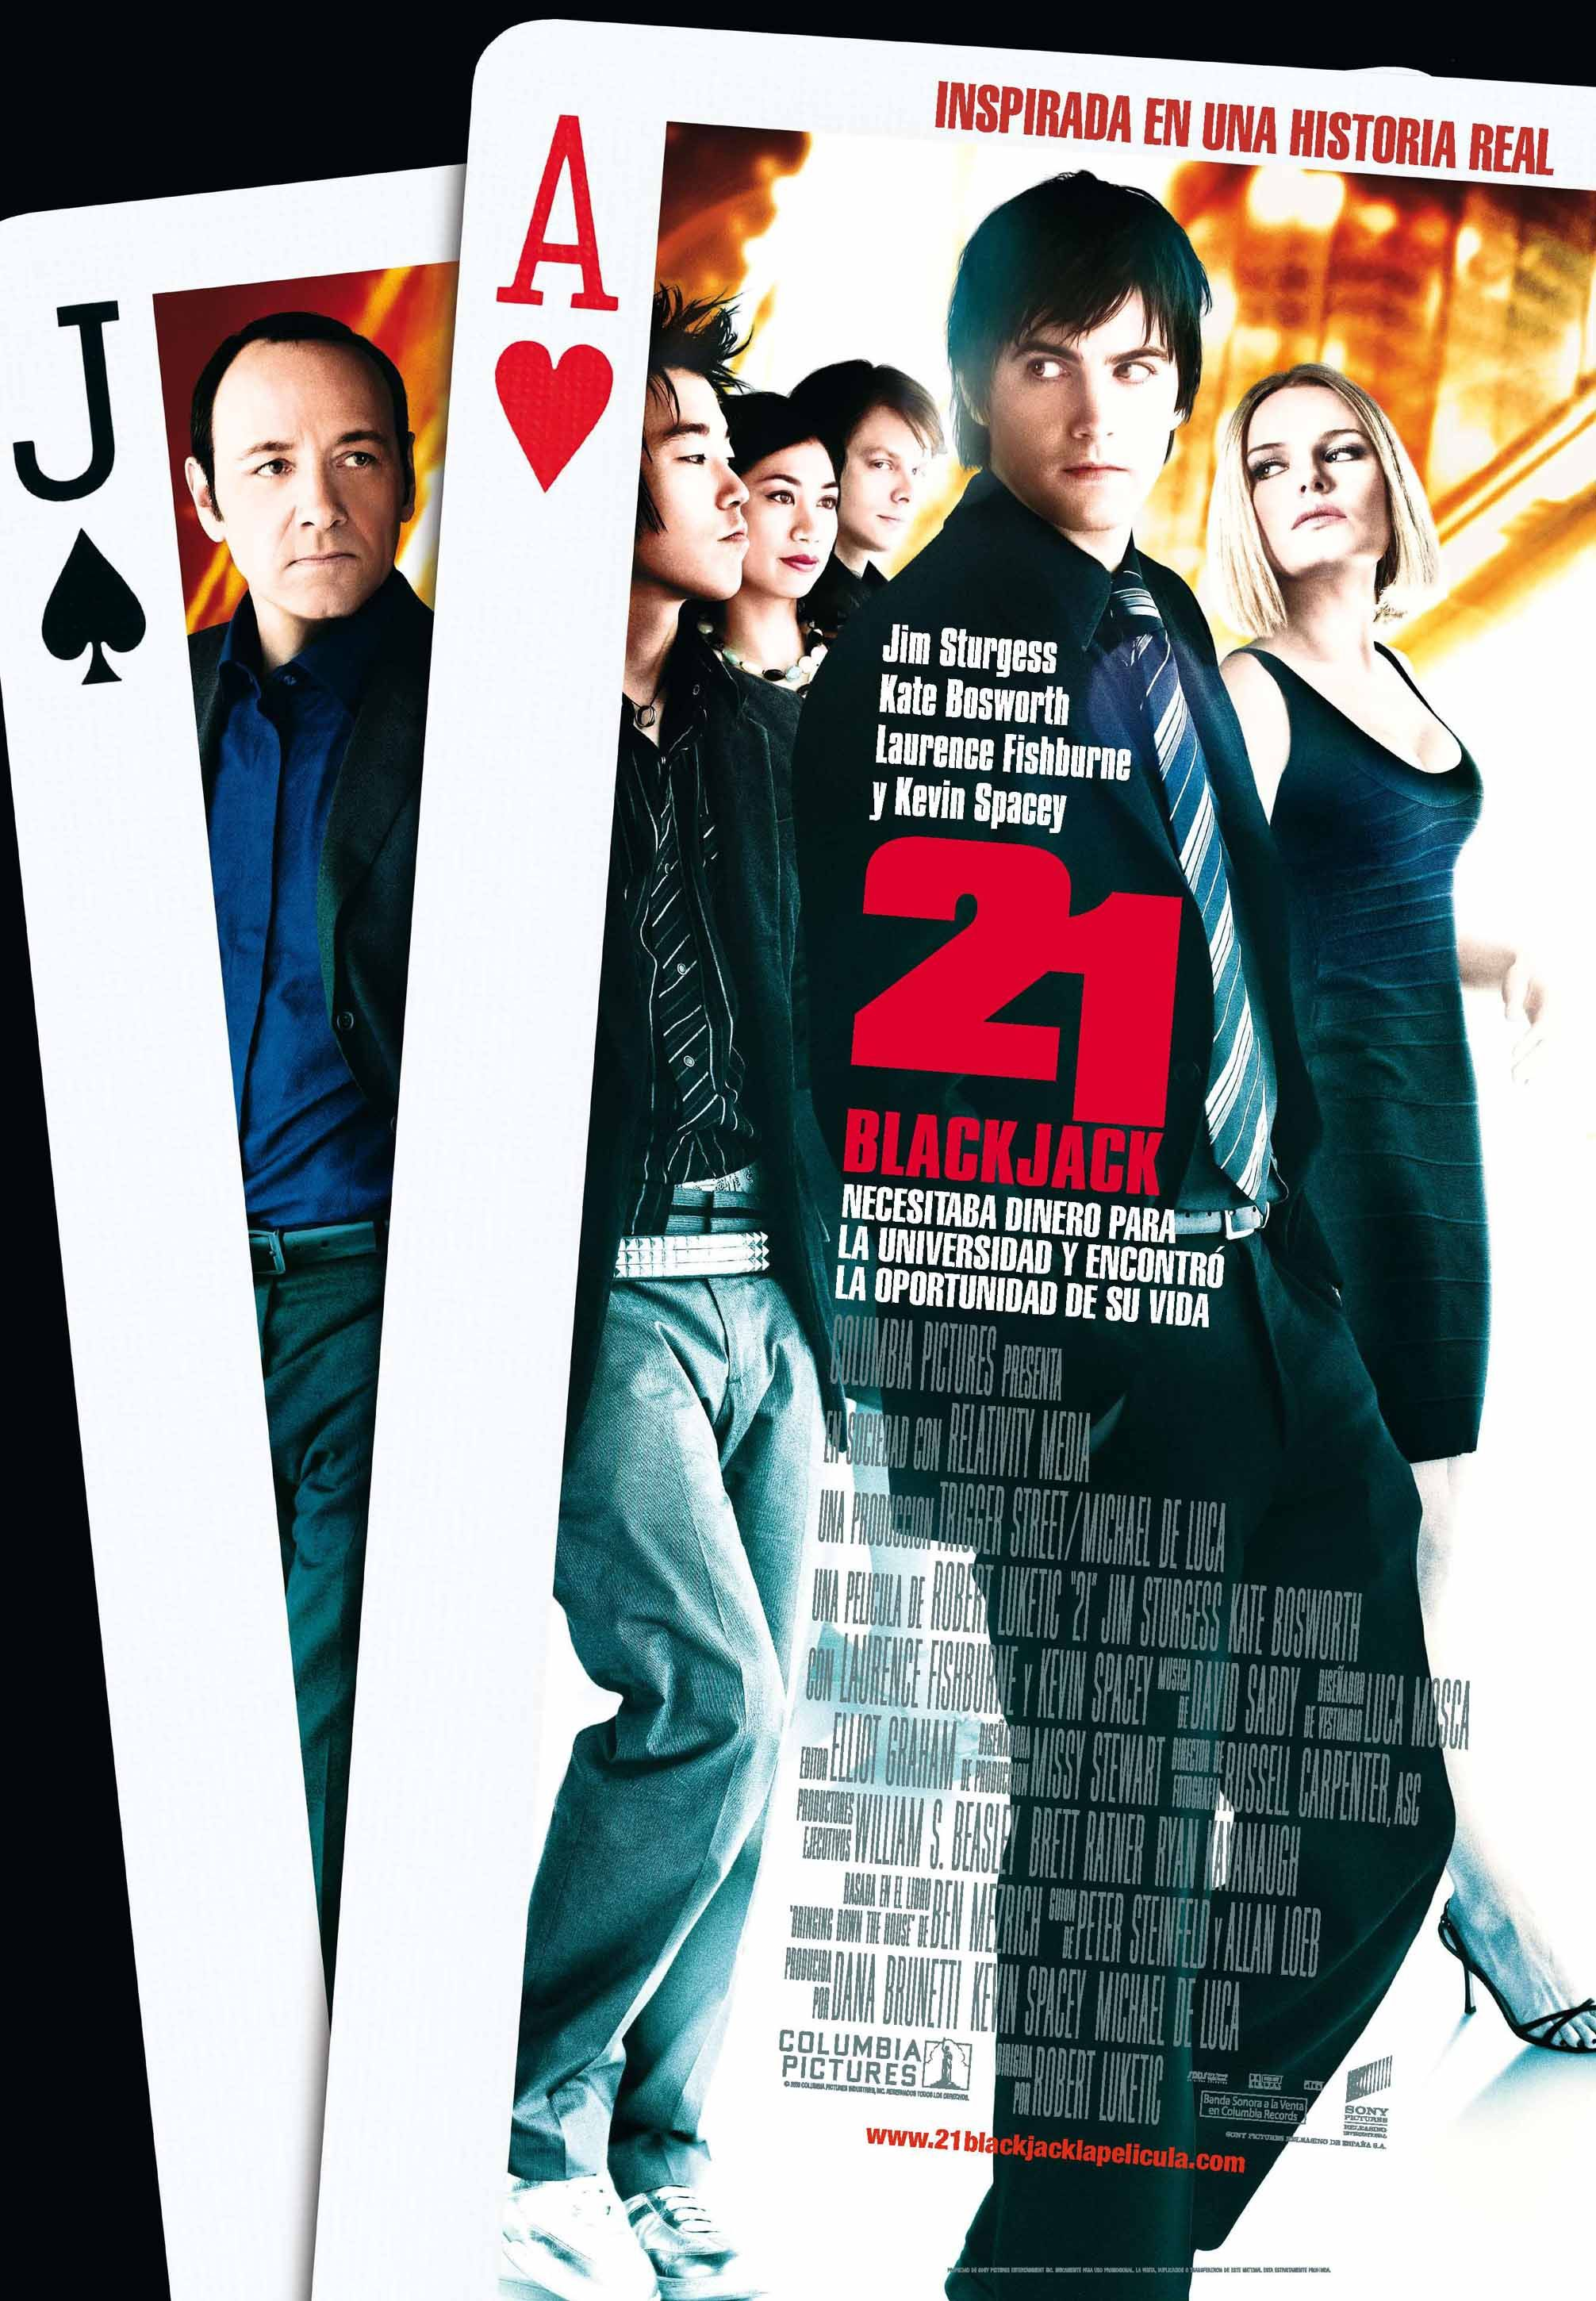 Pelicula blackjack con brad pitt jeux de poker gratuit sans inscription sans telechargement